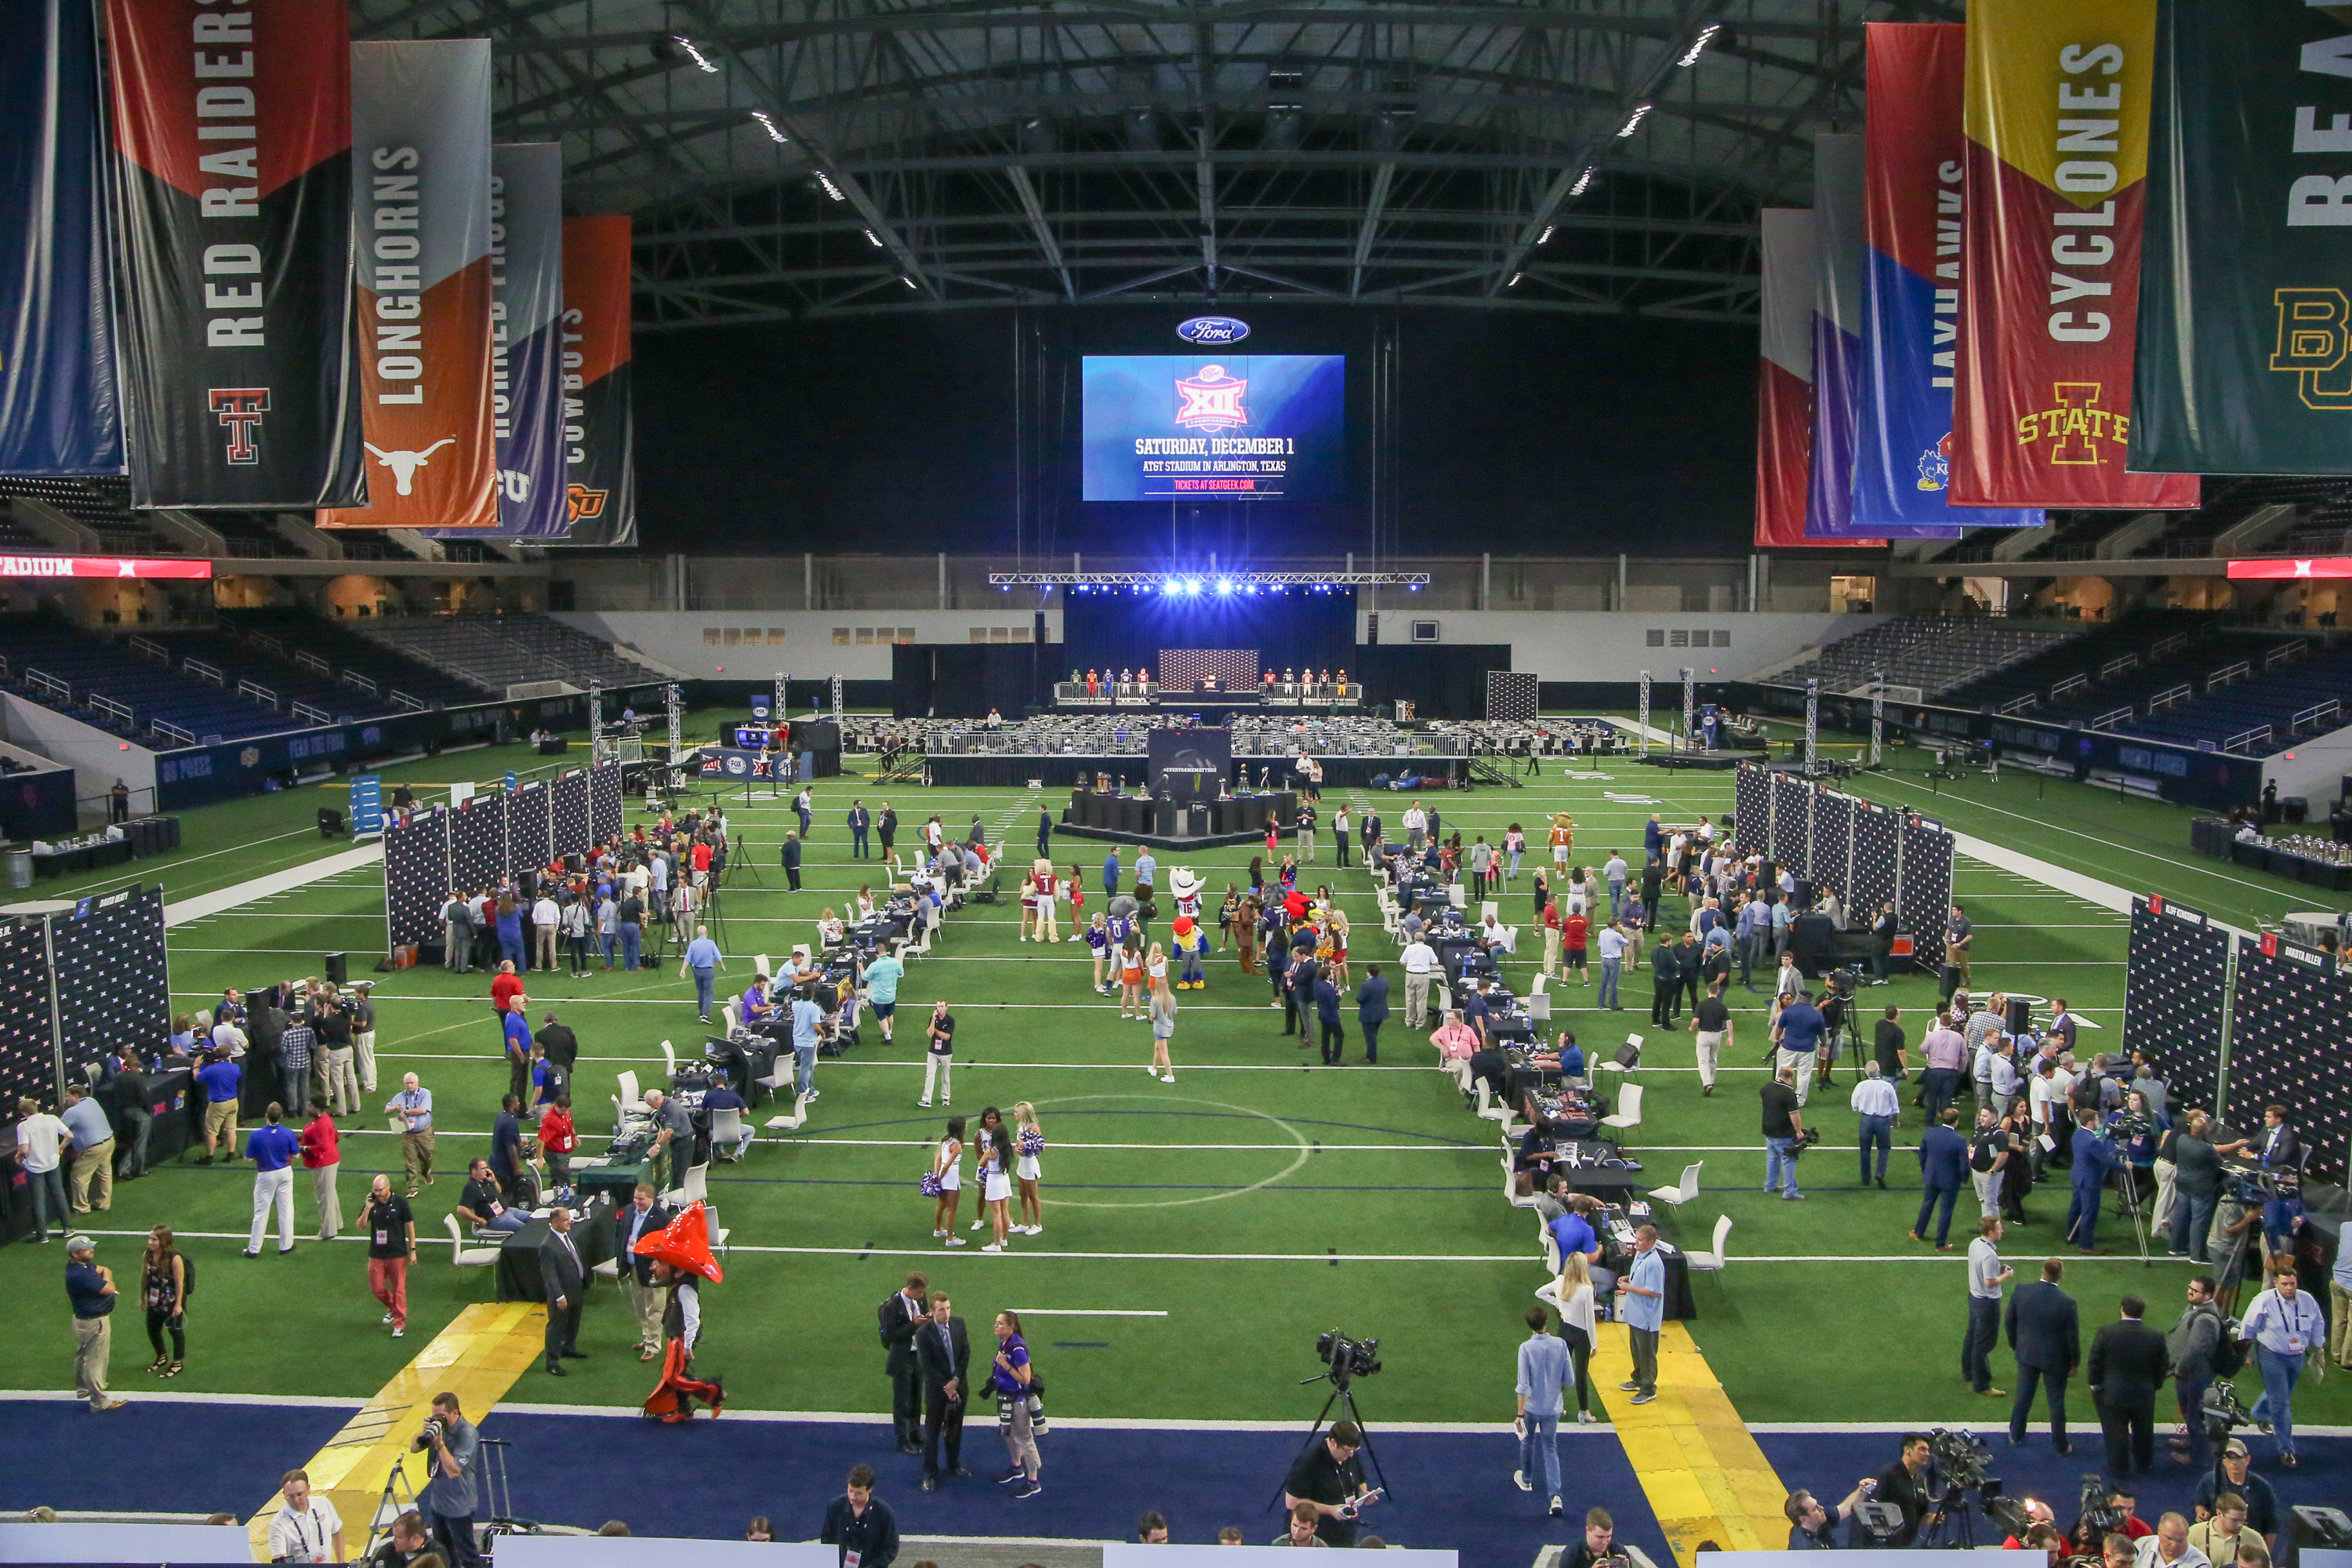 The Star in Frisco, Texas cost $1.5bn to build and has a 12,000-seat stadium inside